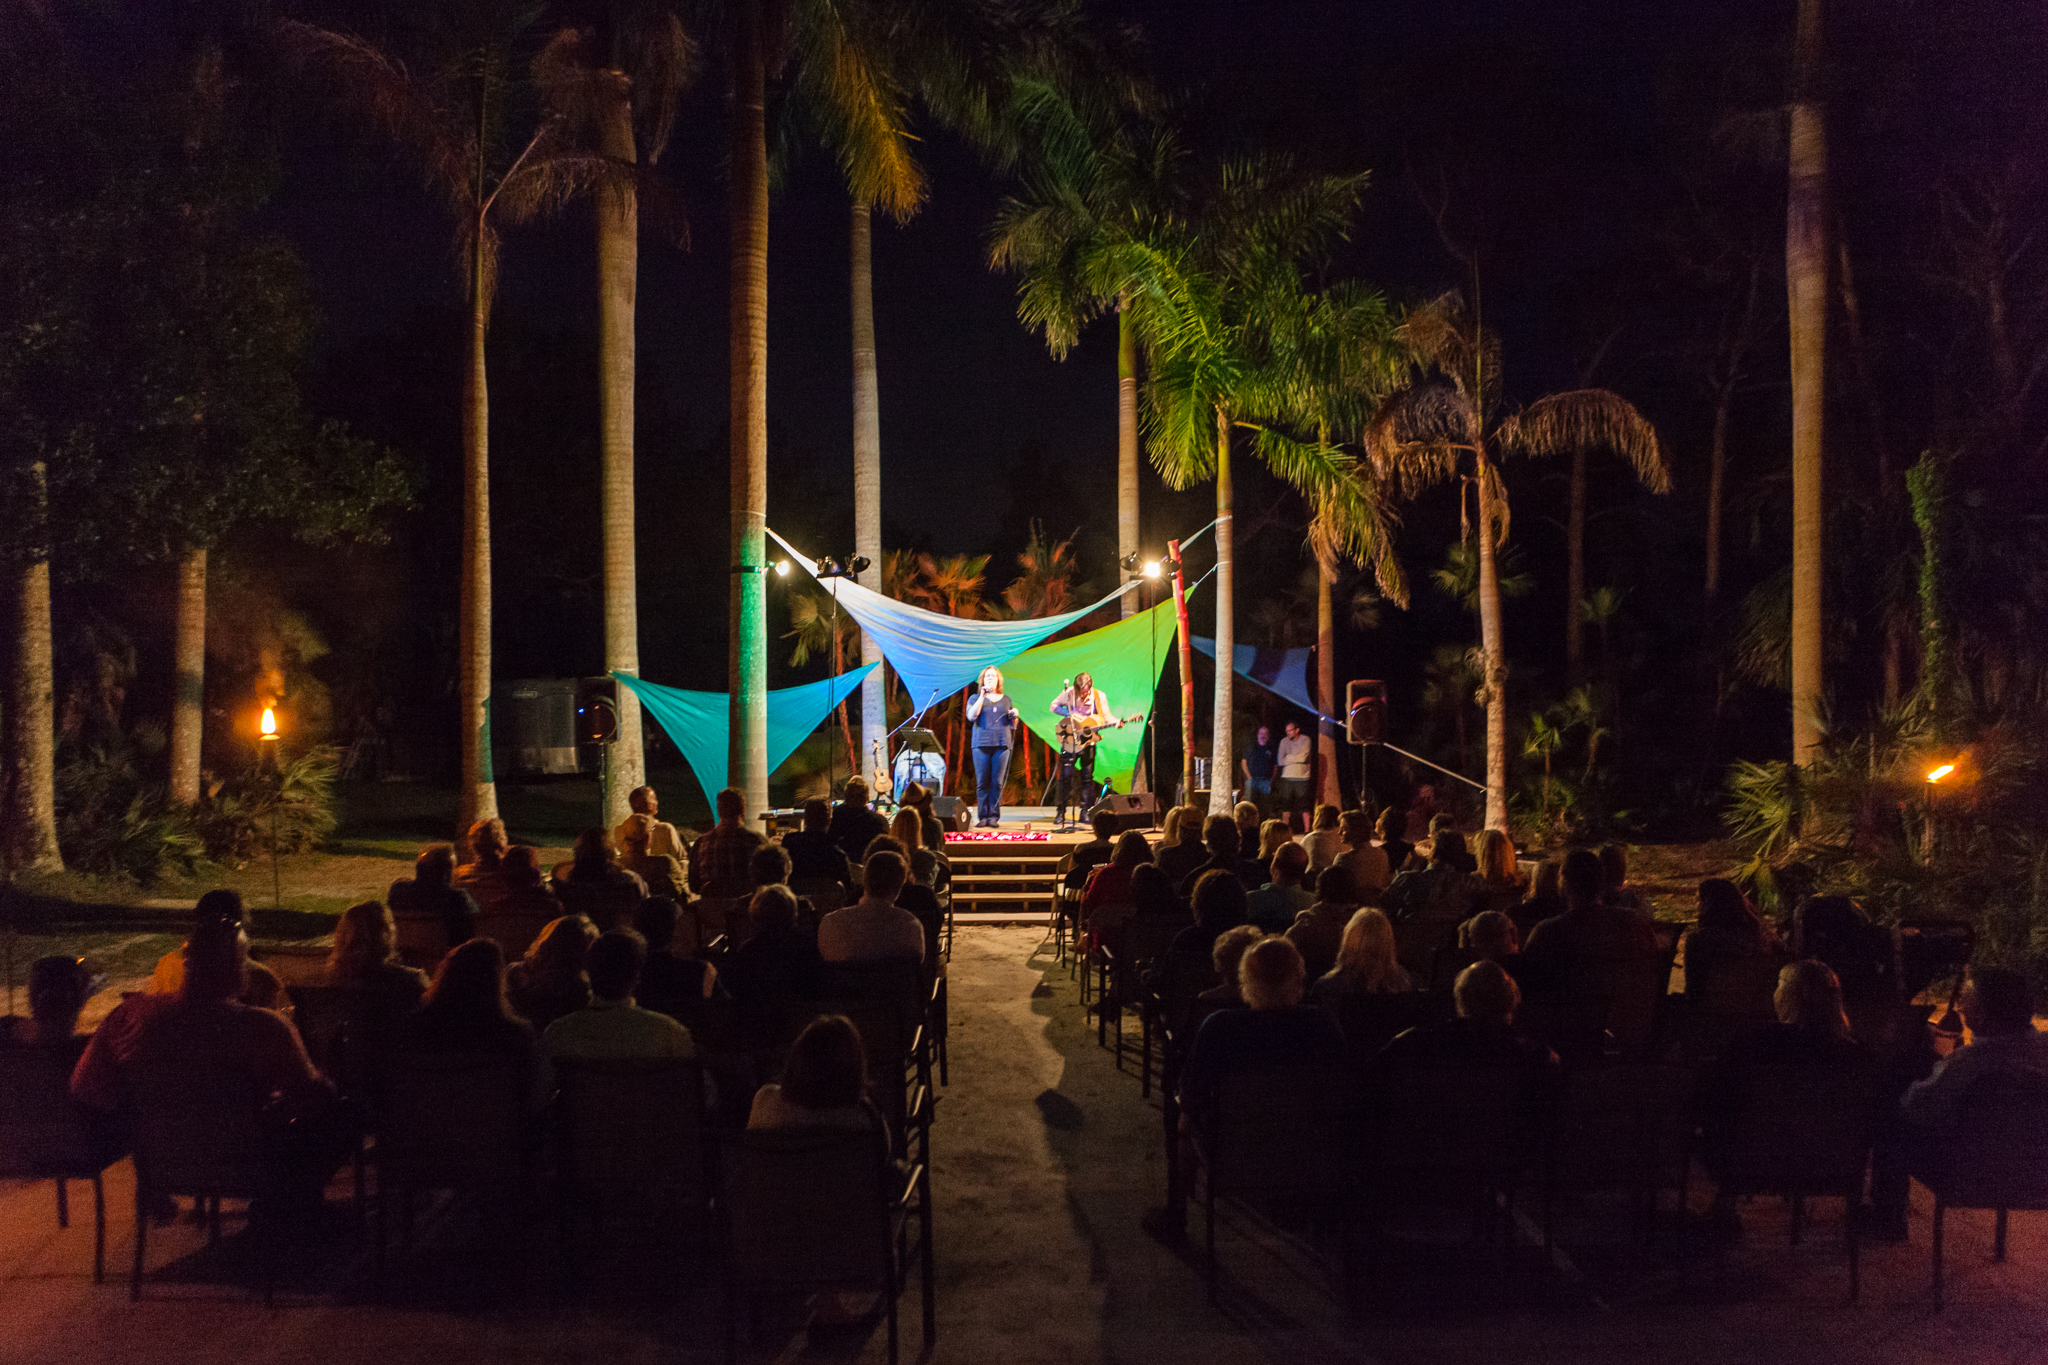 March 24th, 2018 was another incredible  Evening of Music and Vegetables  at the farm, featuring New York based singer/songwriter,  Sloan Wainwright . It was also the perfect opportunity to raise money for our local Slow Food chapter,  Slow Food Gold and Treasure Coast . Our new event platform was christened well! Photo by  Matthew Stover .